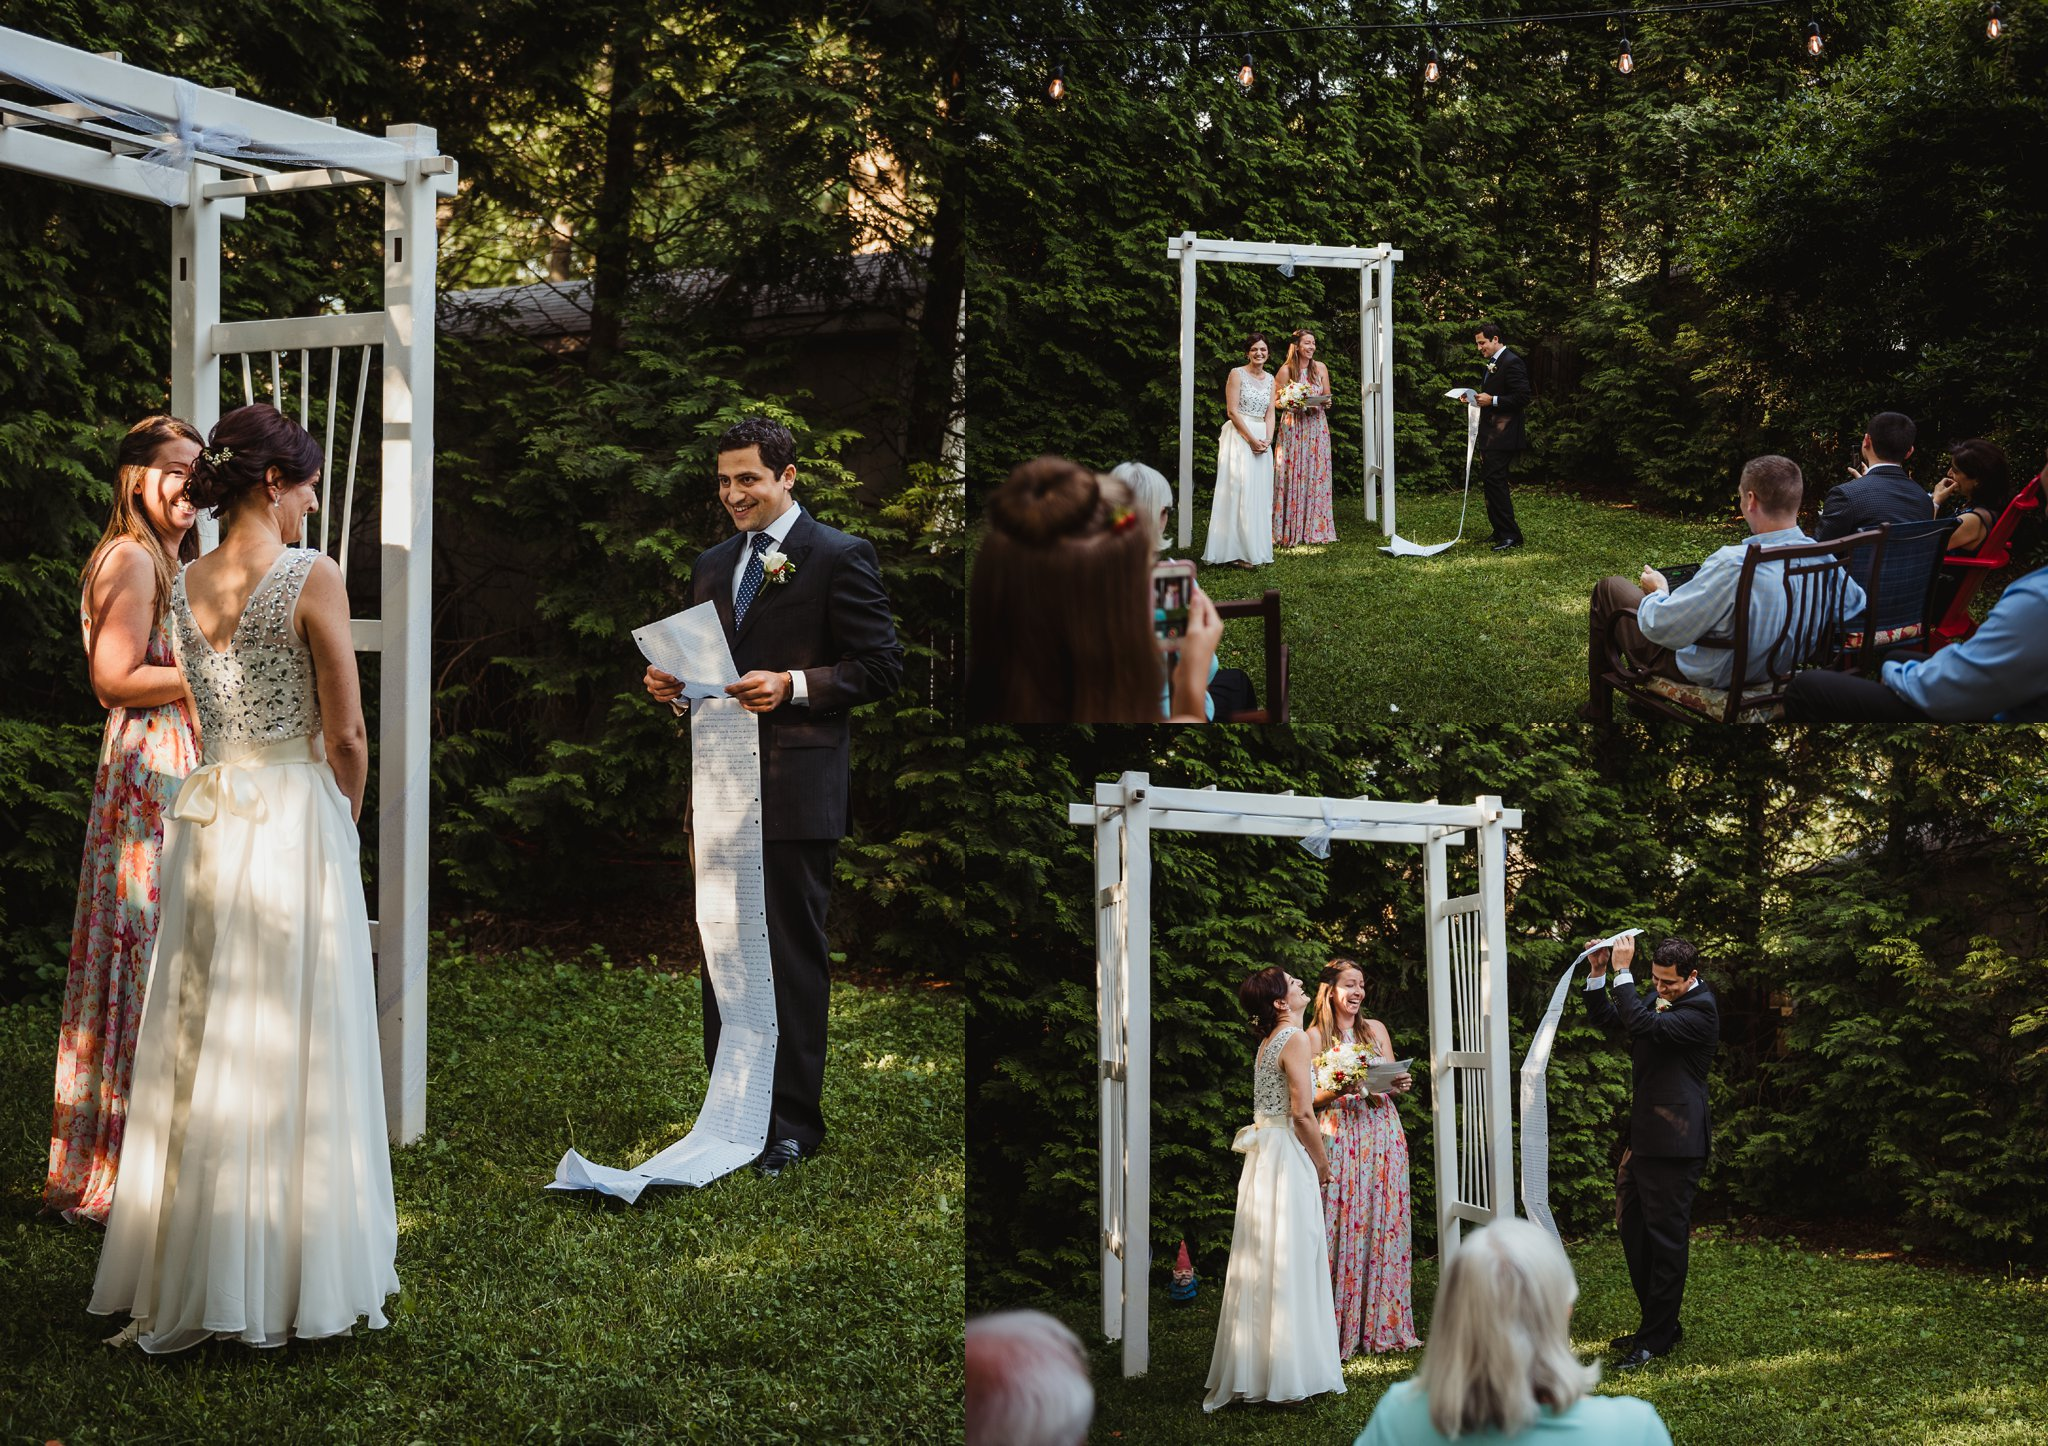 """The groom read his very """"long"""" vows during their intimate wedding ceremony that took place in their backyard in downtown Raleigh, North Carolina, photo by Rose Trail Images."""